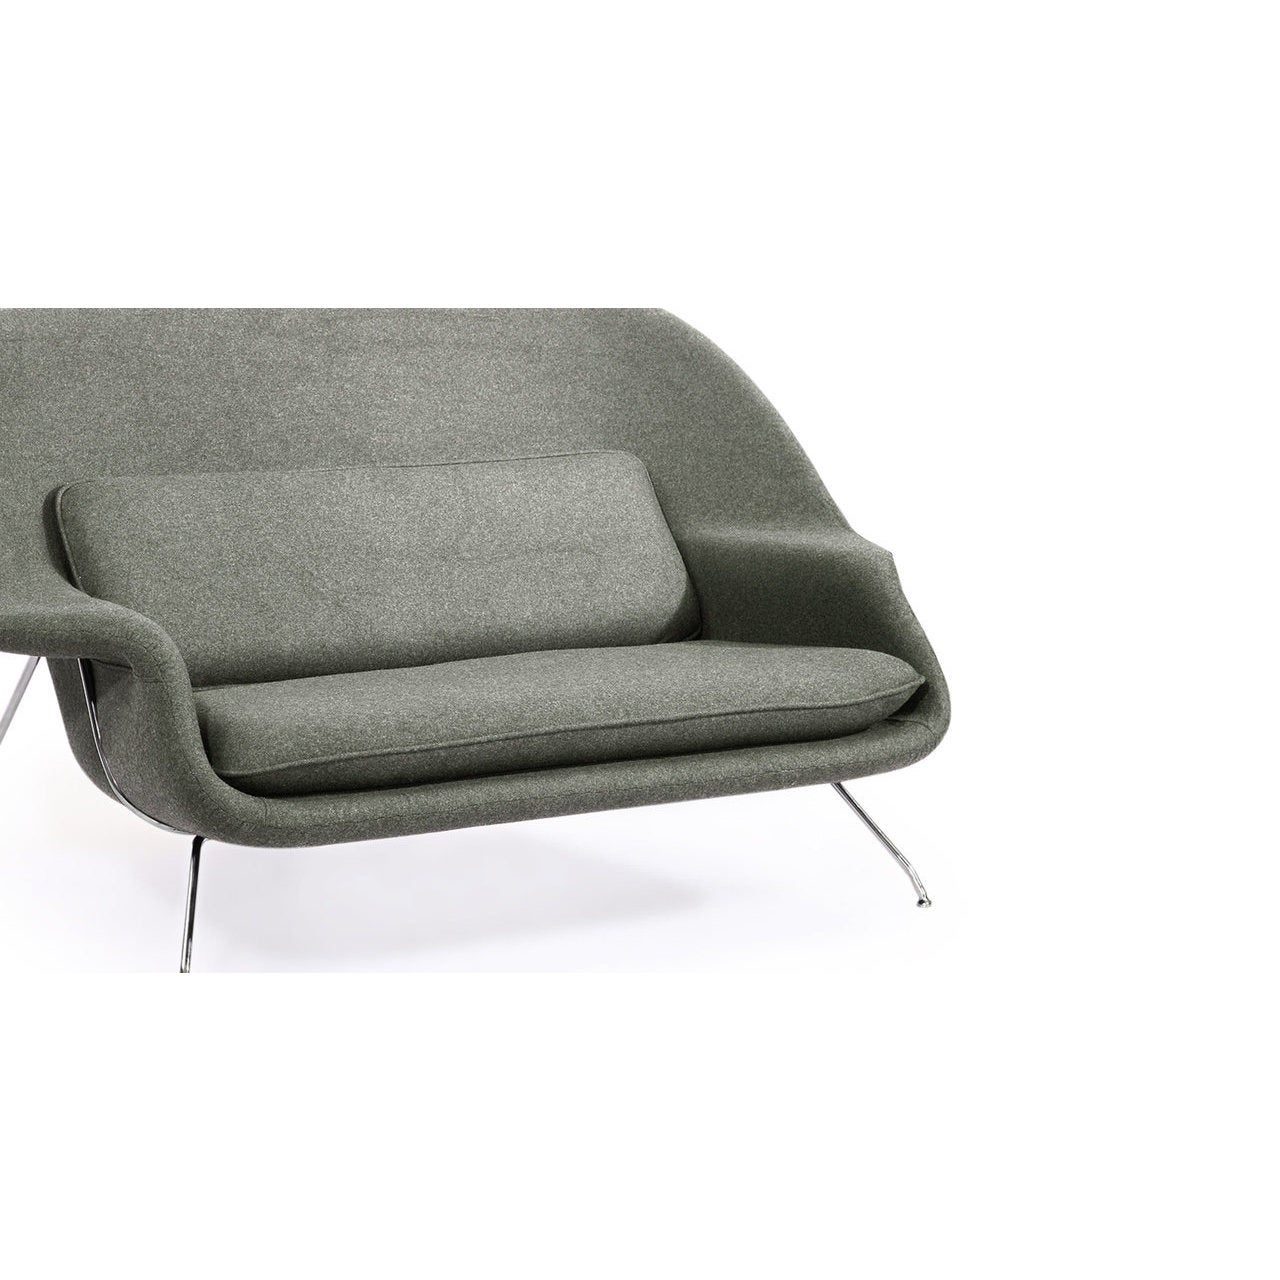 Strick Bolton Calloway Mid Century Modern Cashmere Wool Loveseat Sofa Free Shipping Today 12816743